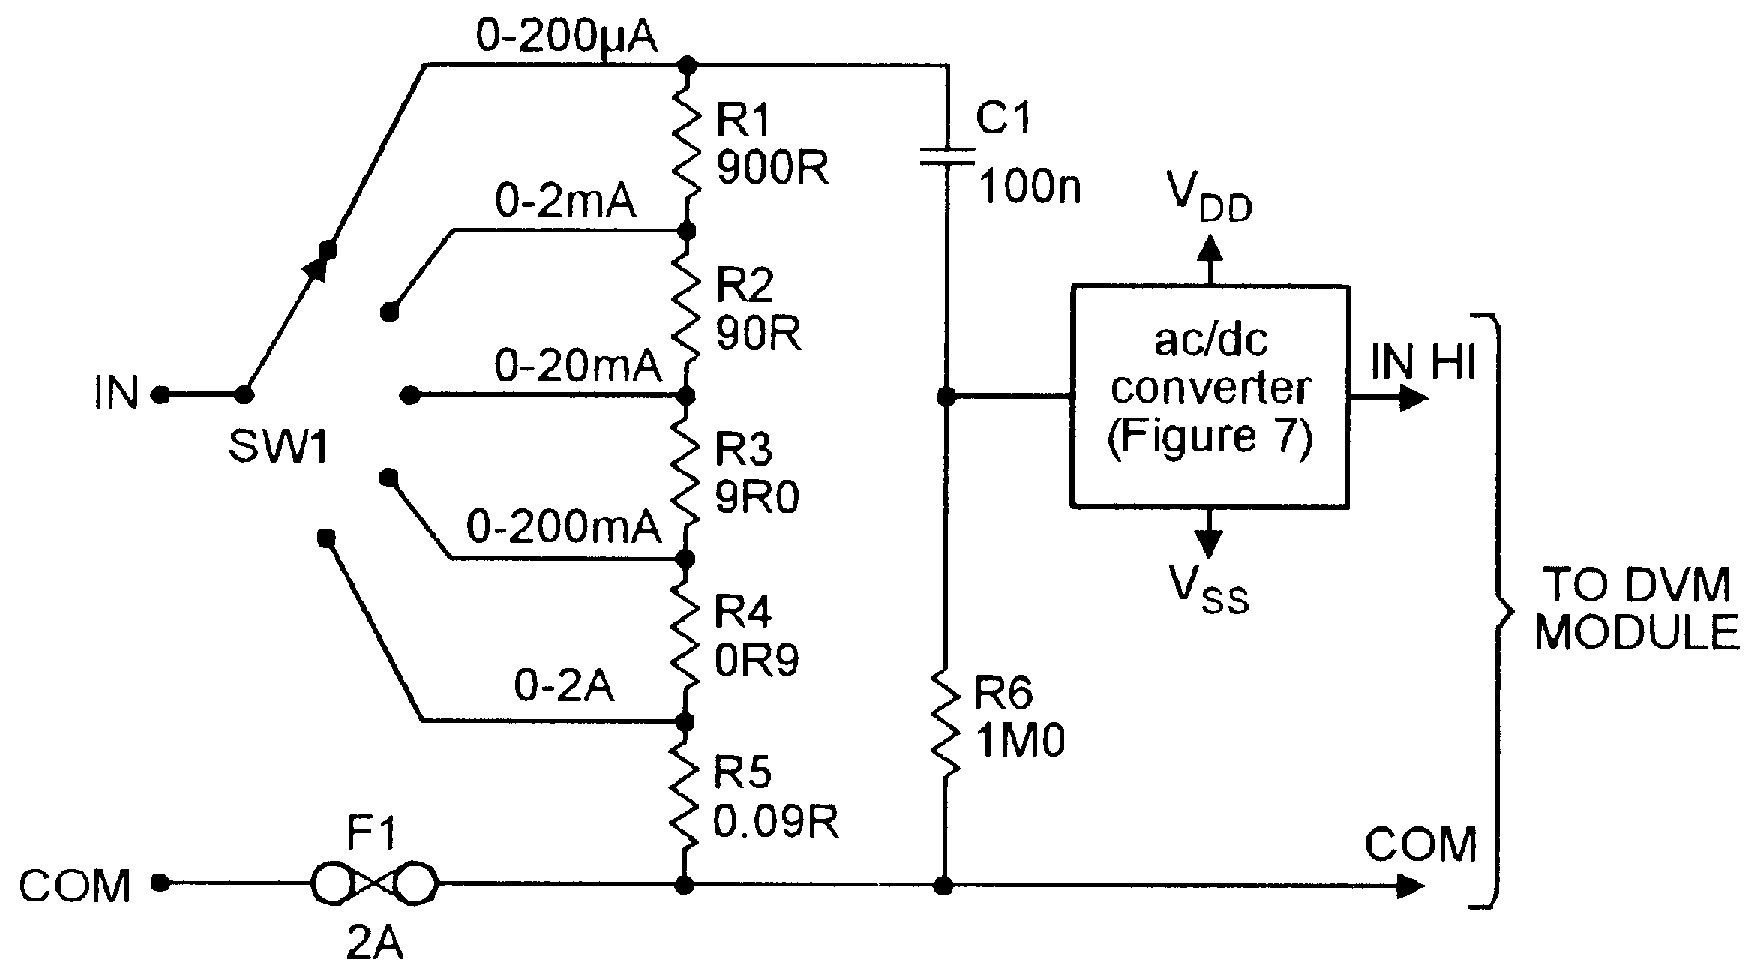 24v To 12v Converter Circuit Using Lm338 Five Range Ac Current Meter For Use With Dvm Modules